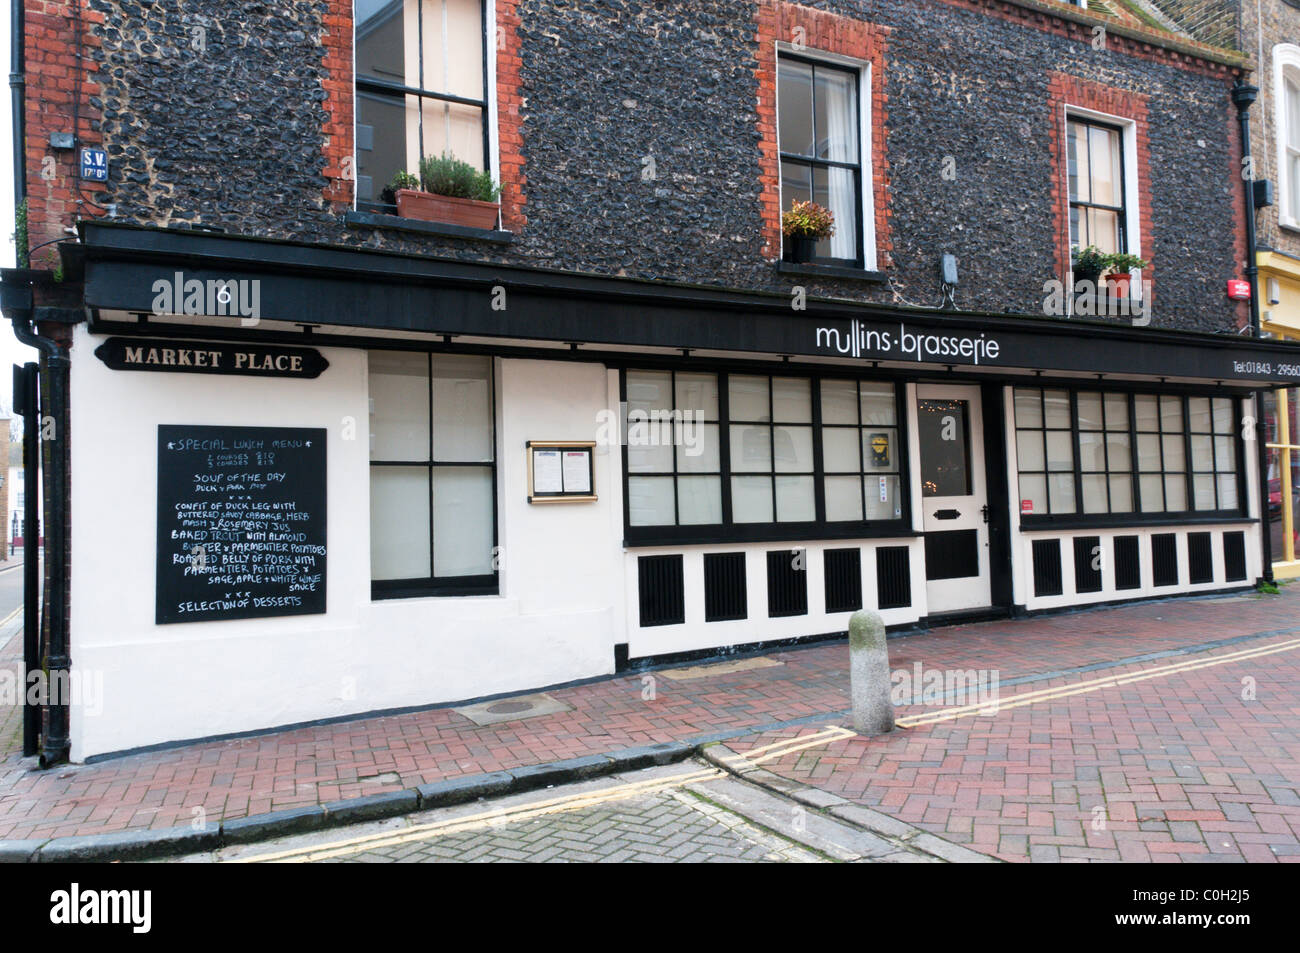 Mullins Brasserie in the old town of Margate - Stock Image